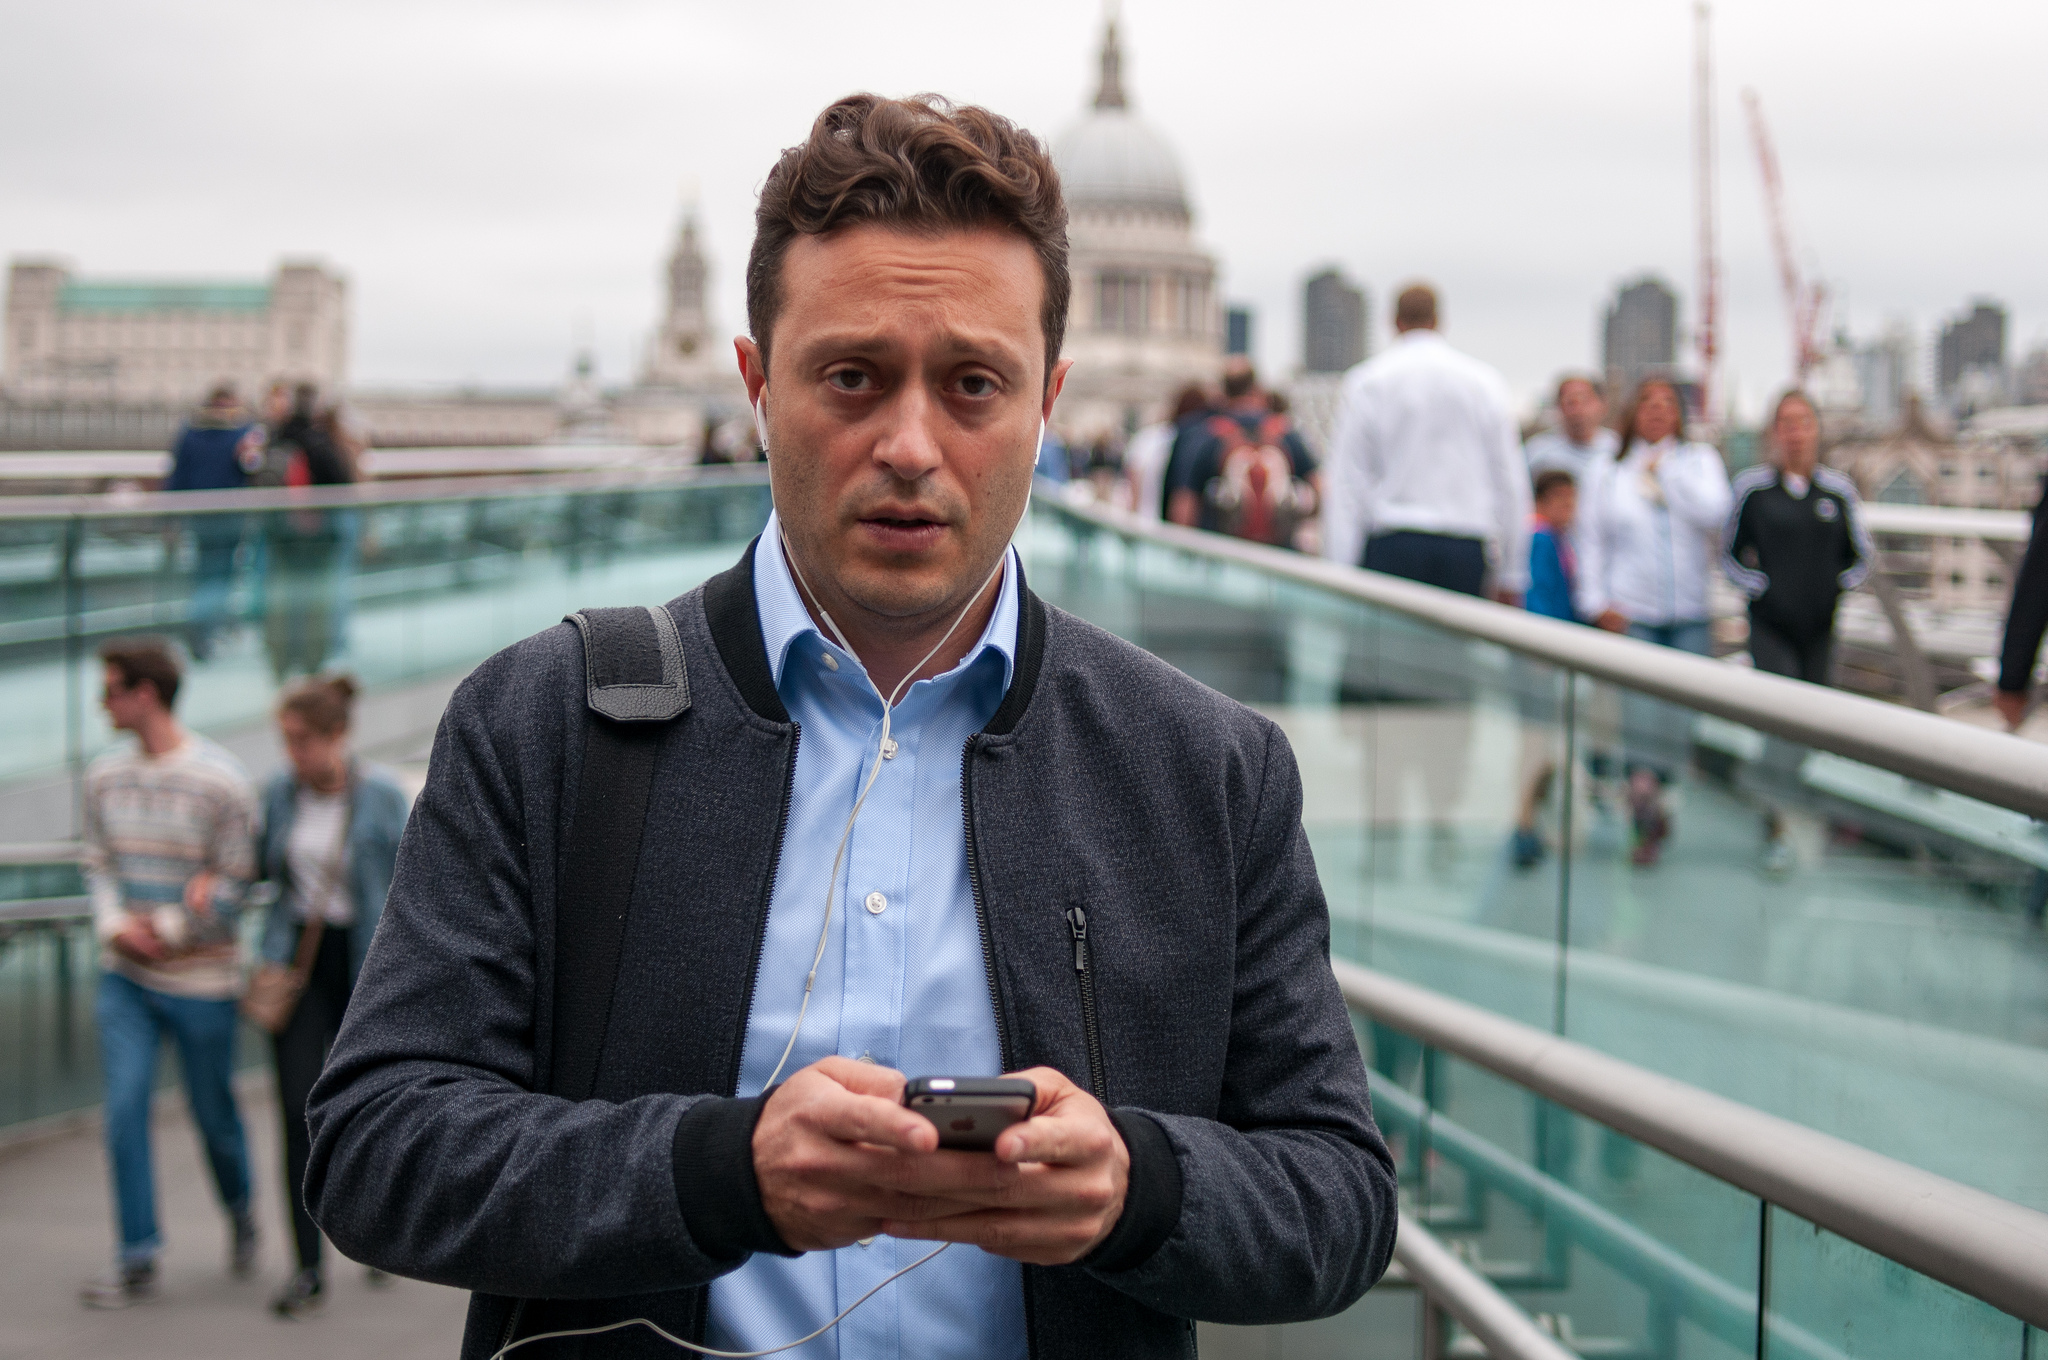 New street photography project aims to capture society's smartphone obsession - Amateur Photographer